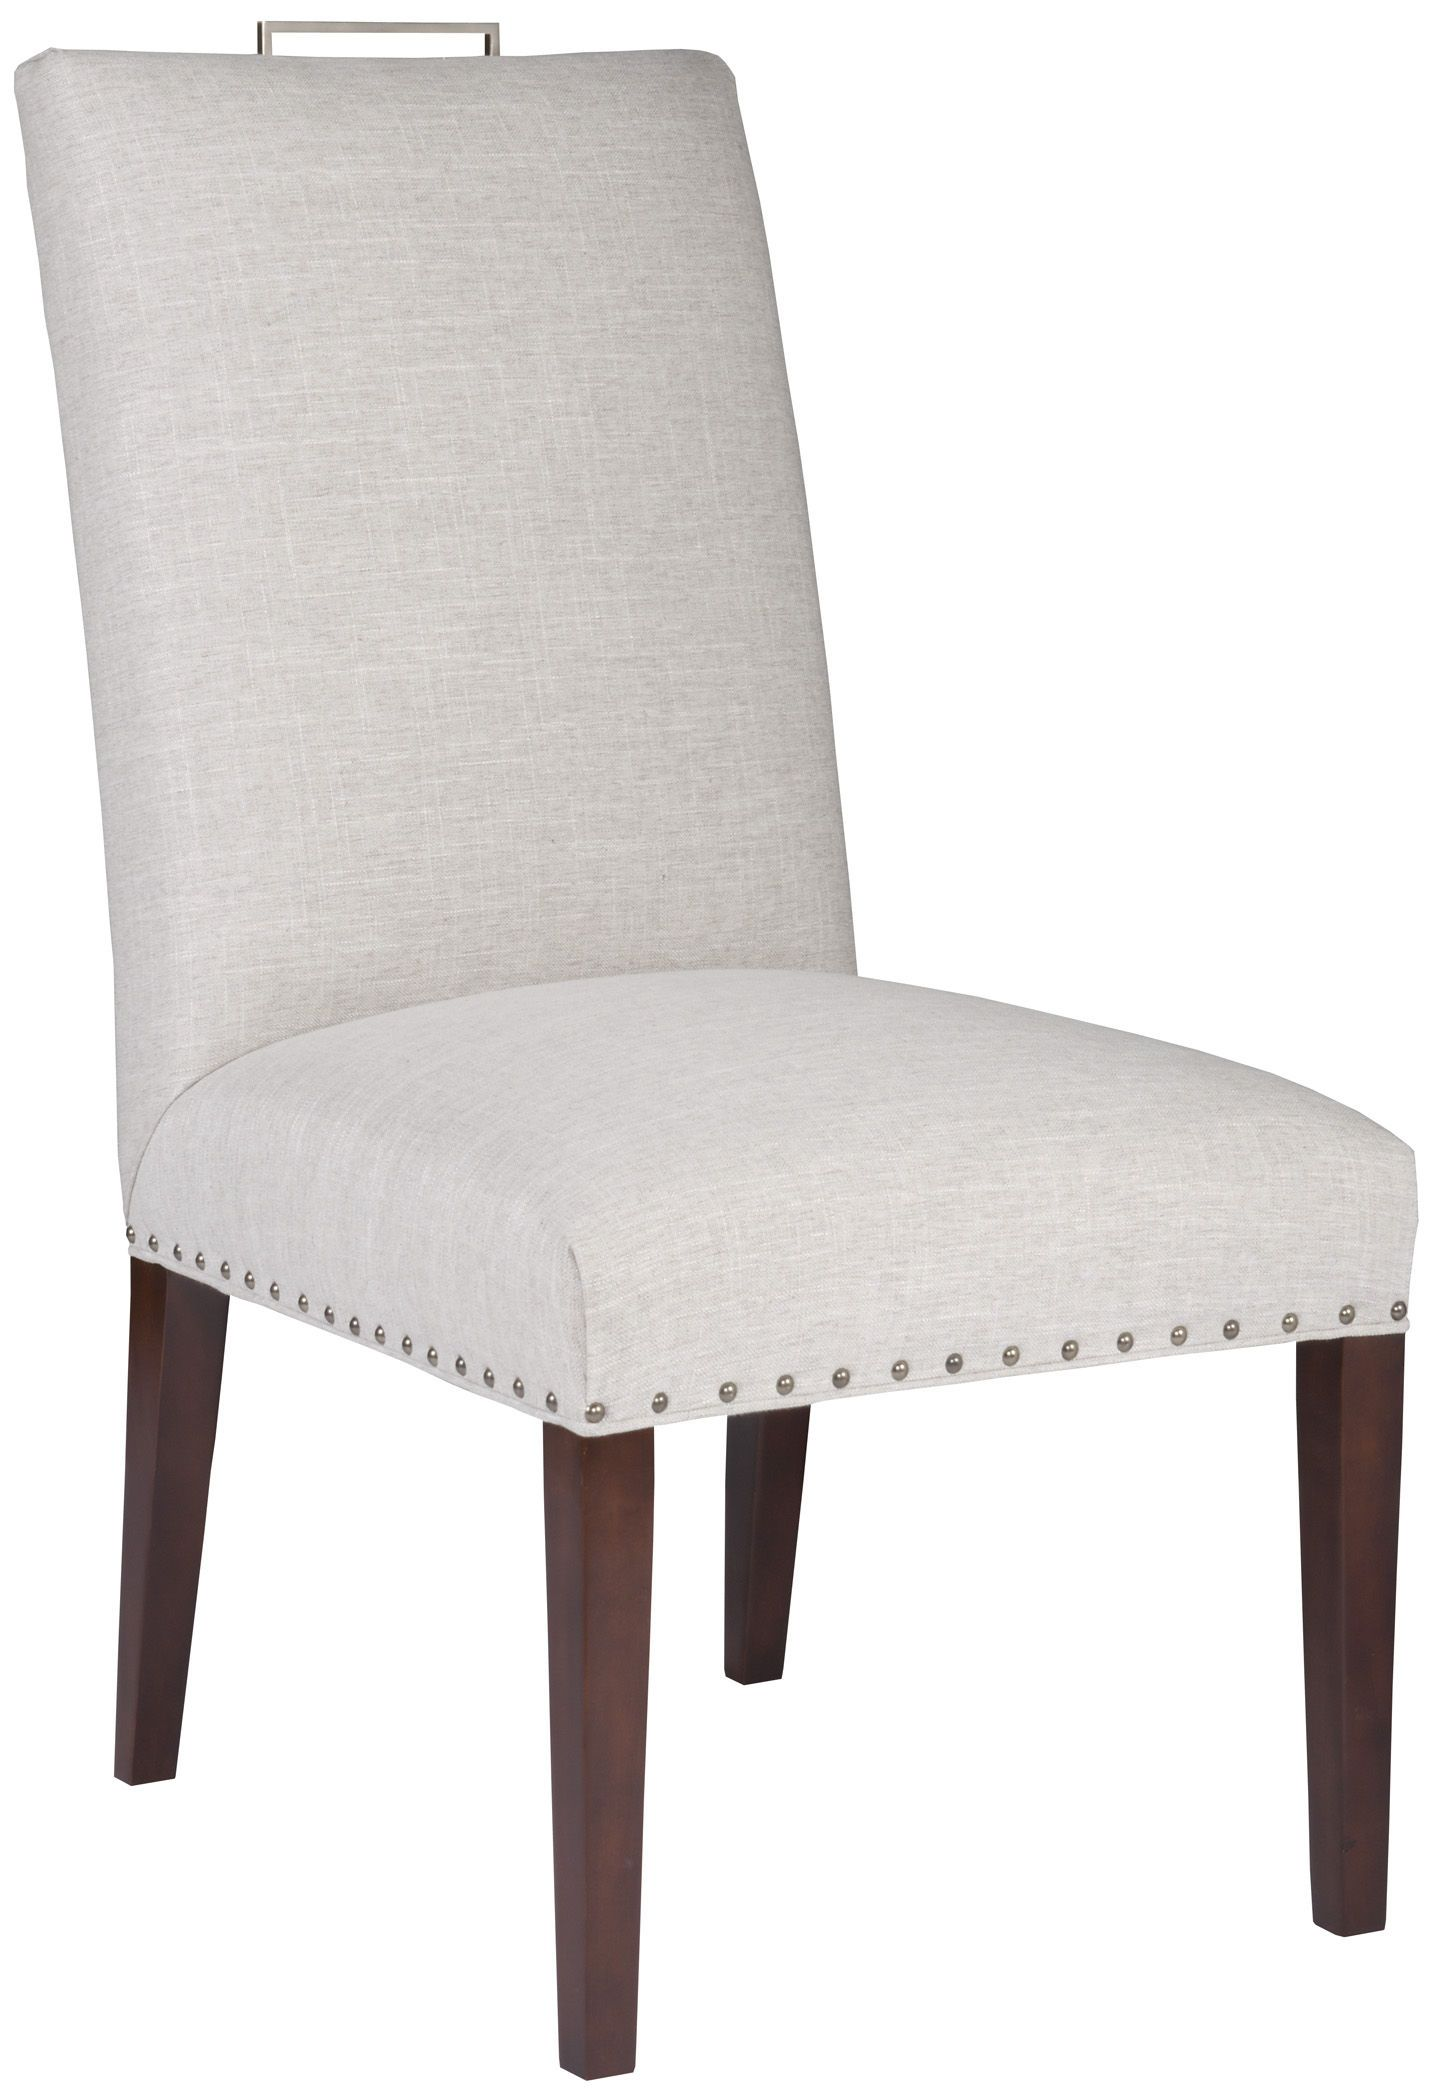 Vanguard Furniture   Our Products   Everhart Side Chair